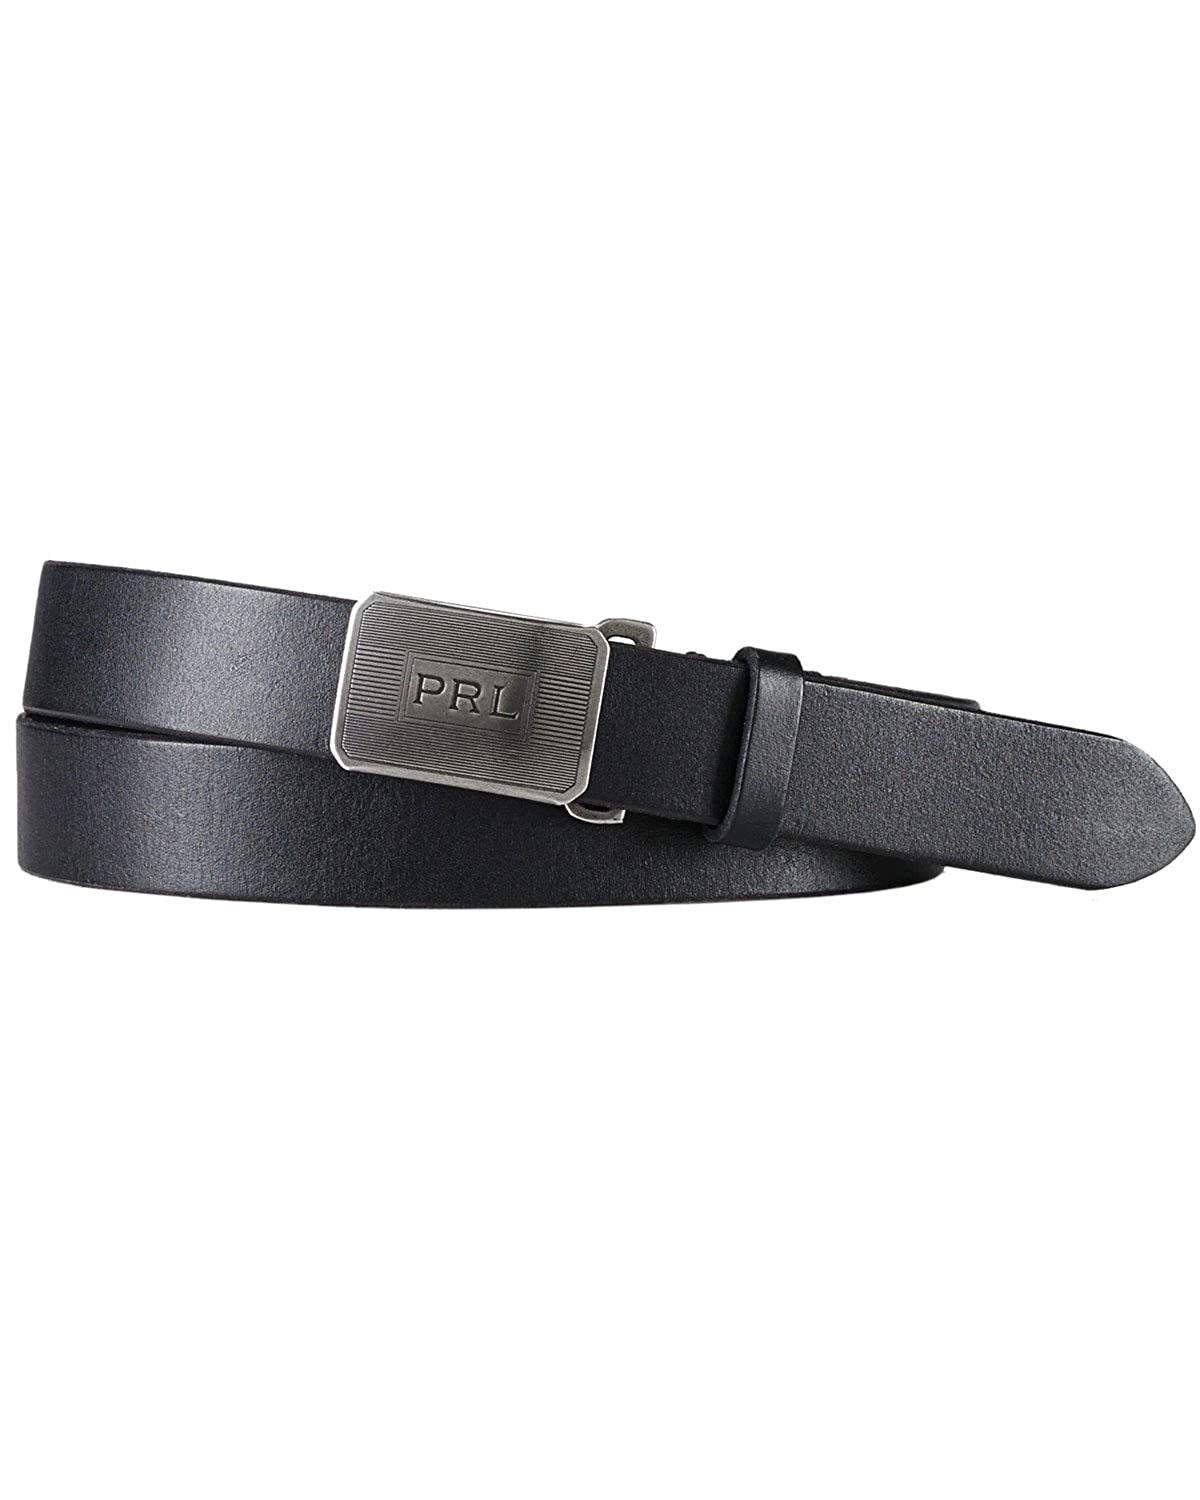 8518e98d1 Polo Ralph Lauren Engine-Turned Leather Belt-B-32 80 at Amazon Men s  Clothing store  Apparel Belts